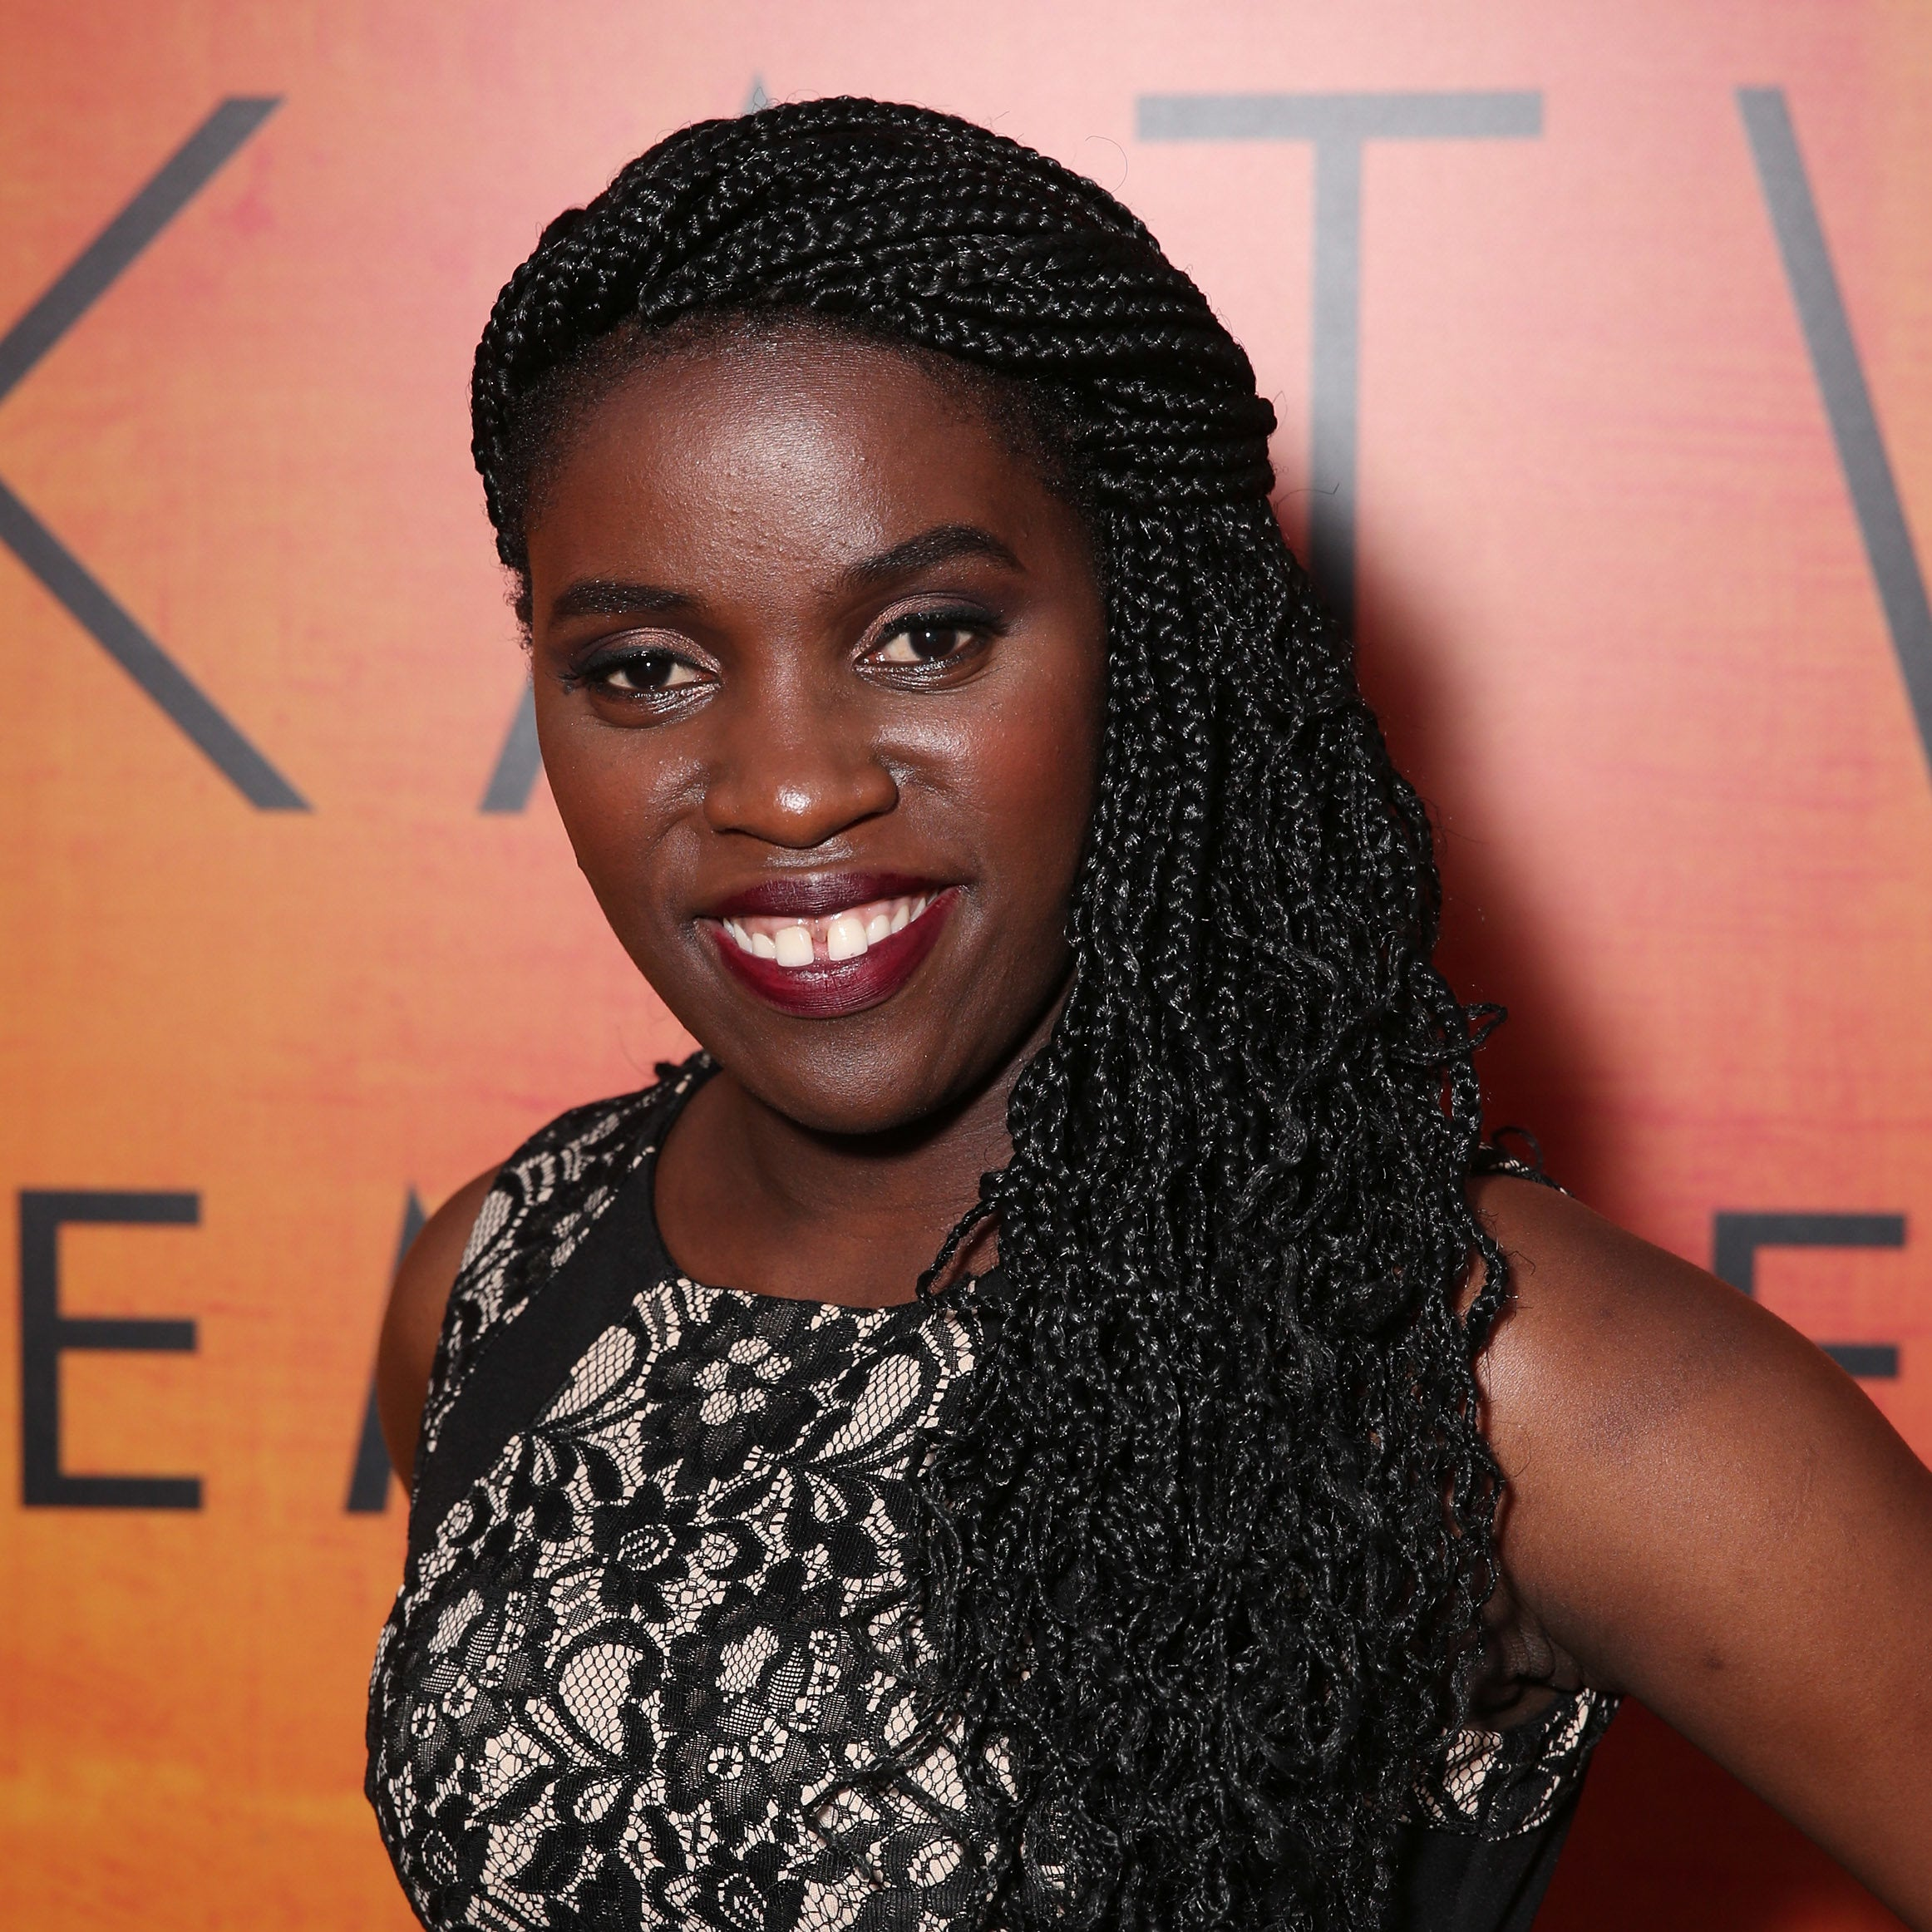 7 Things To Know About Phiona Mutesi, The Chess Prodigy From 'Queen Of Katwe'